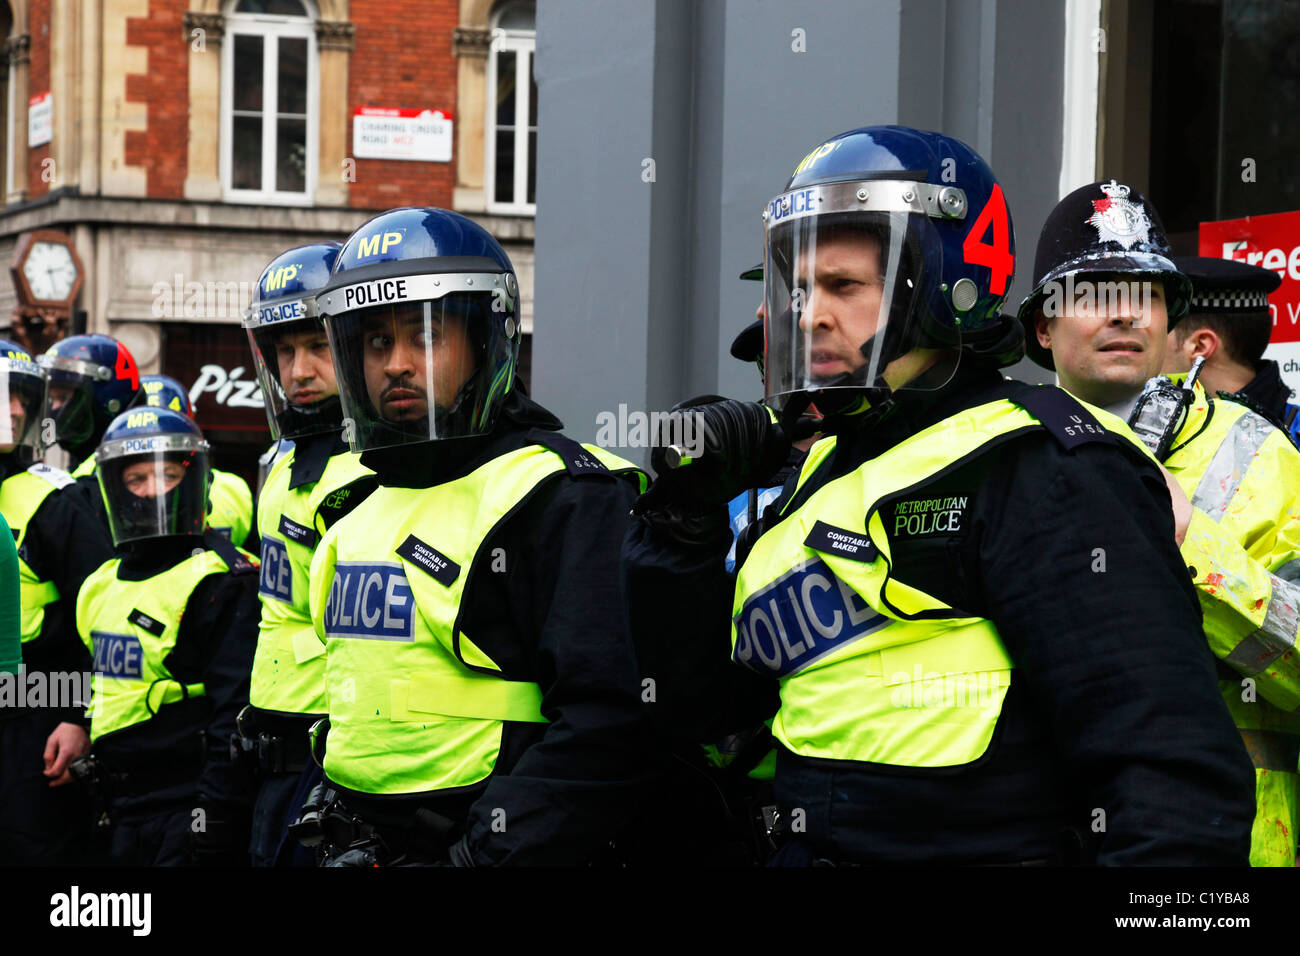 Riot police as anti capitalists rampage through central London on the back of the peaceful TUC protest march. - Stock Image